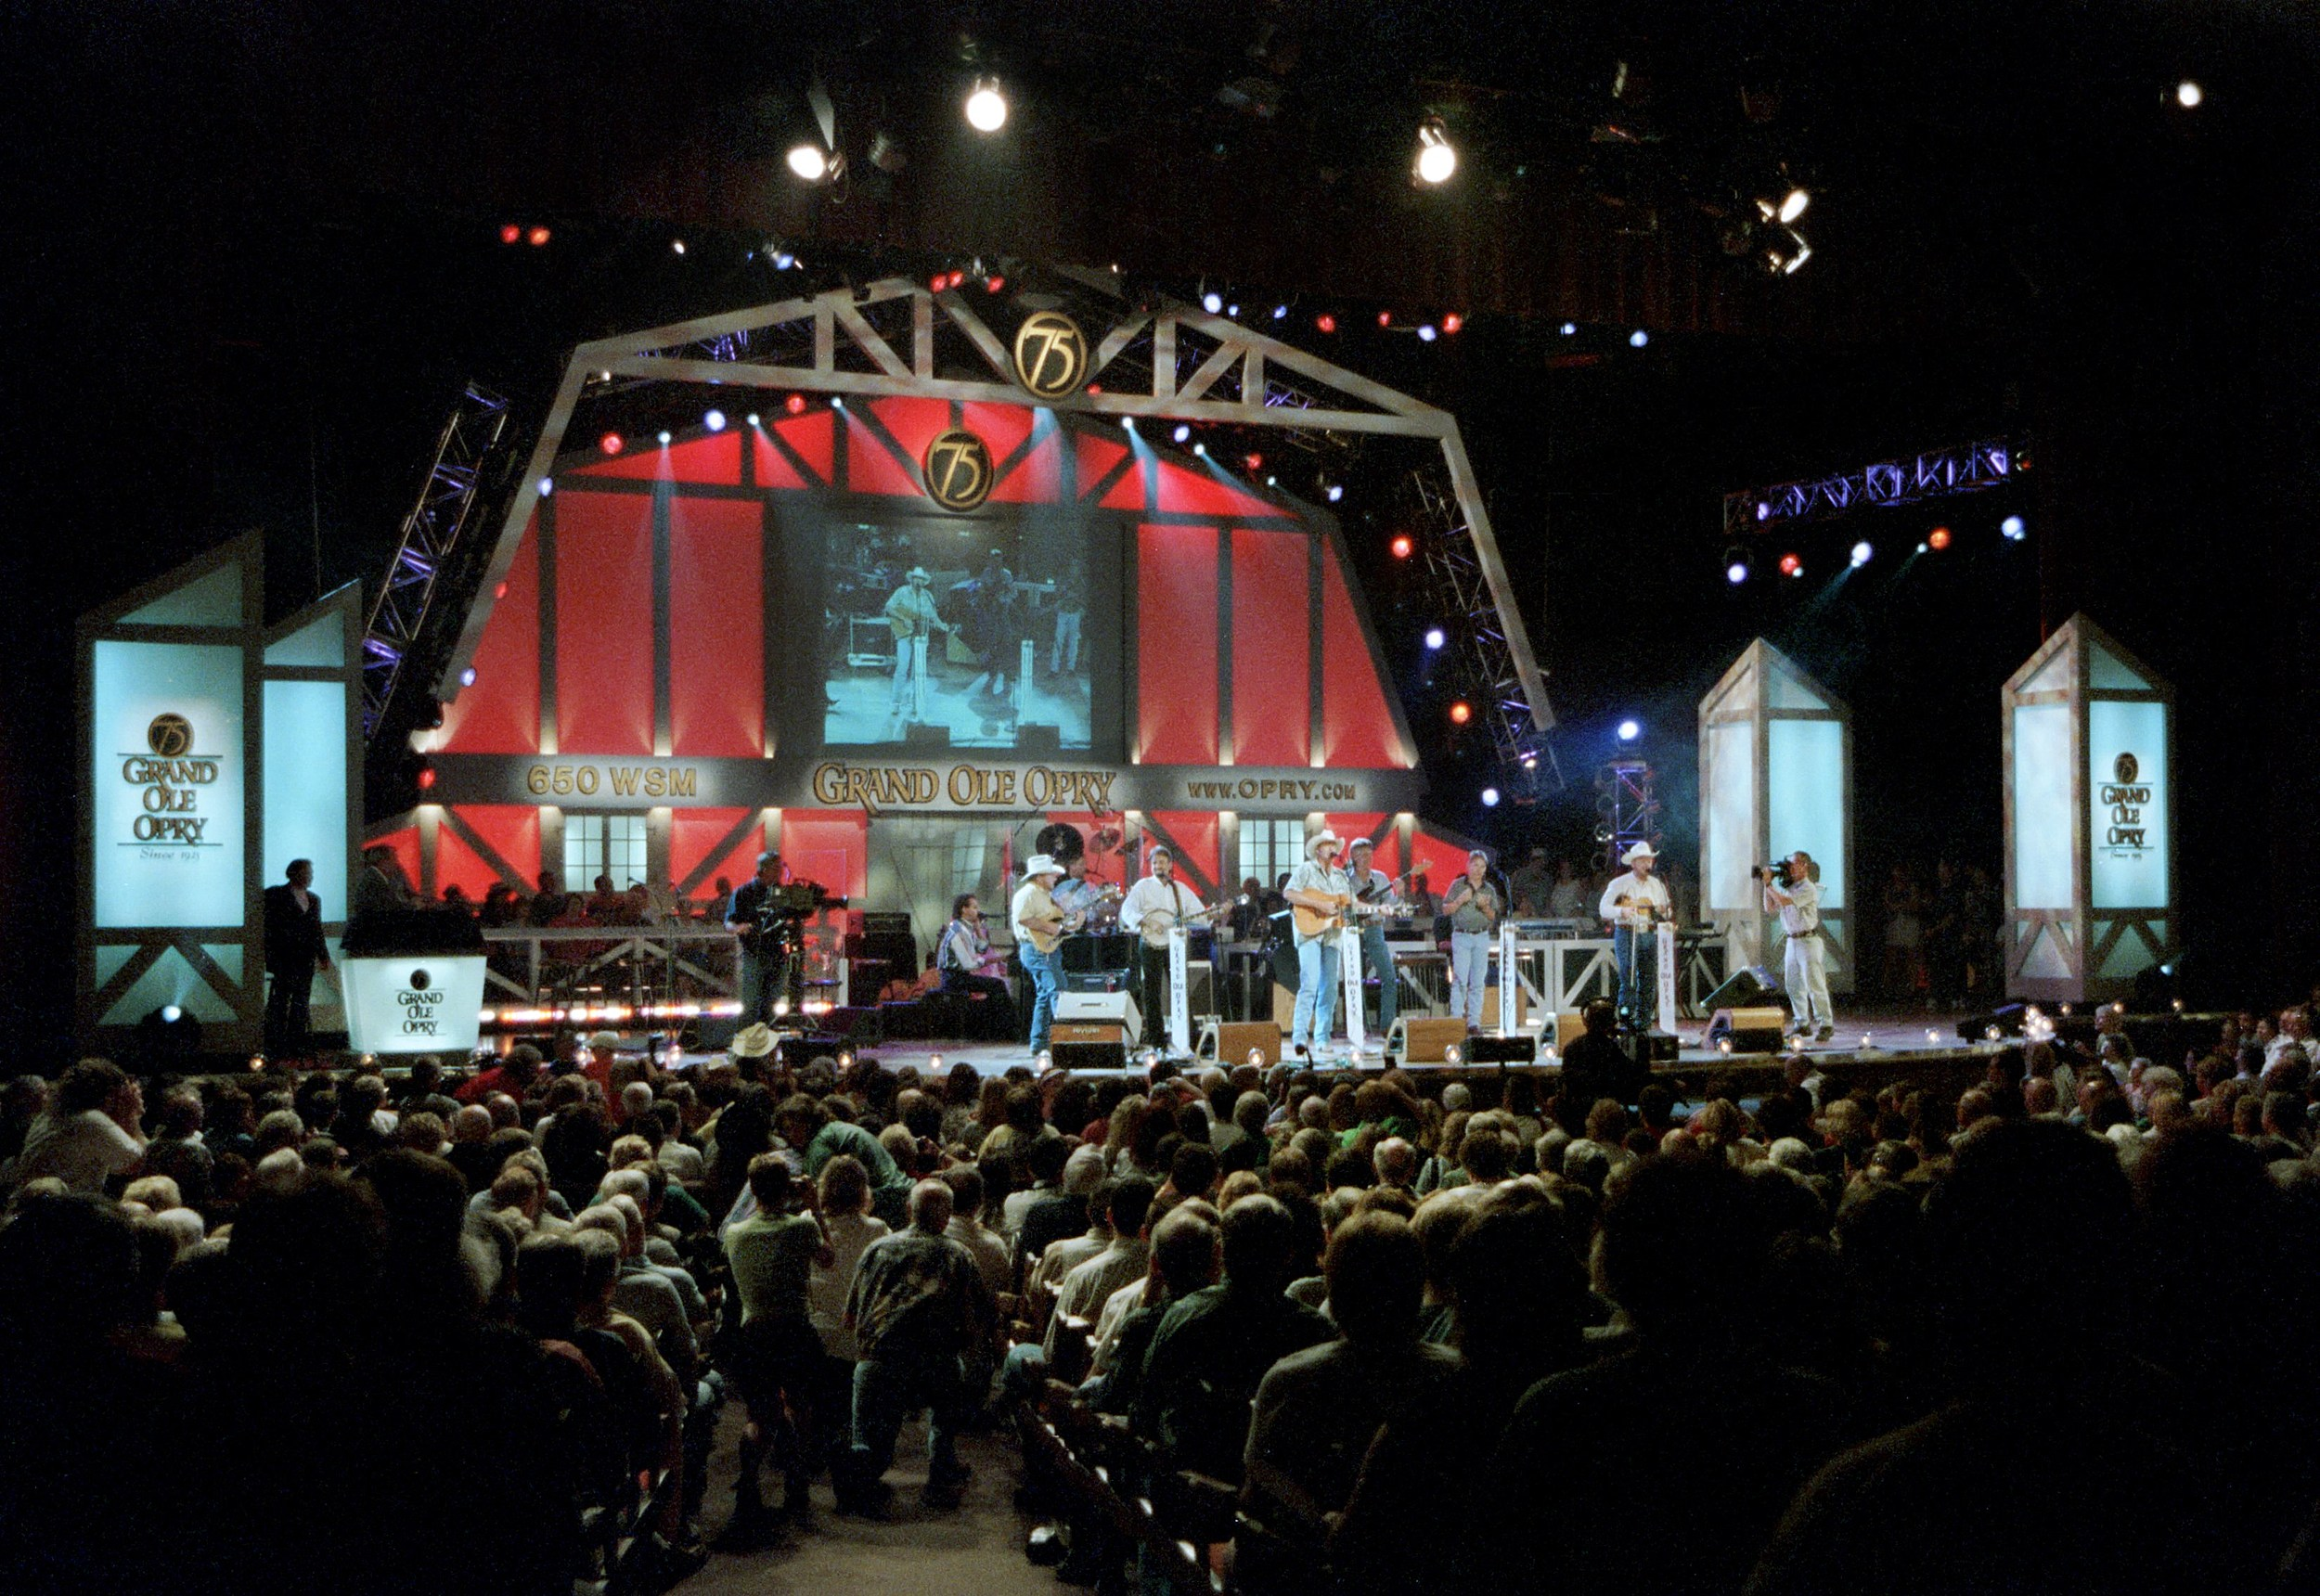 grand ole opry membership: how does it work?